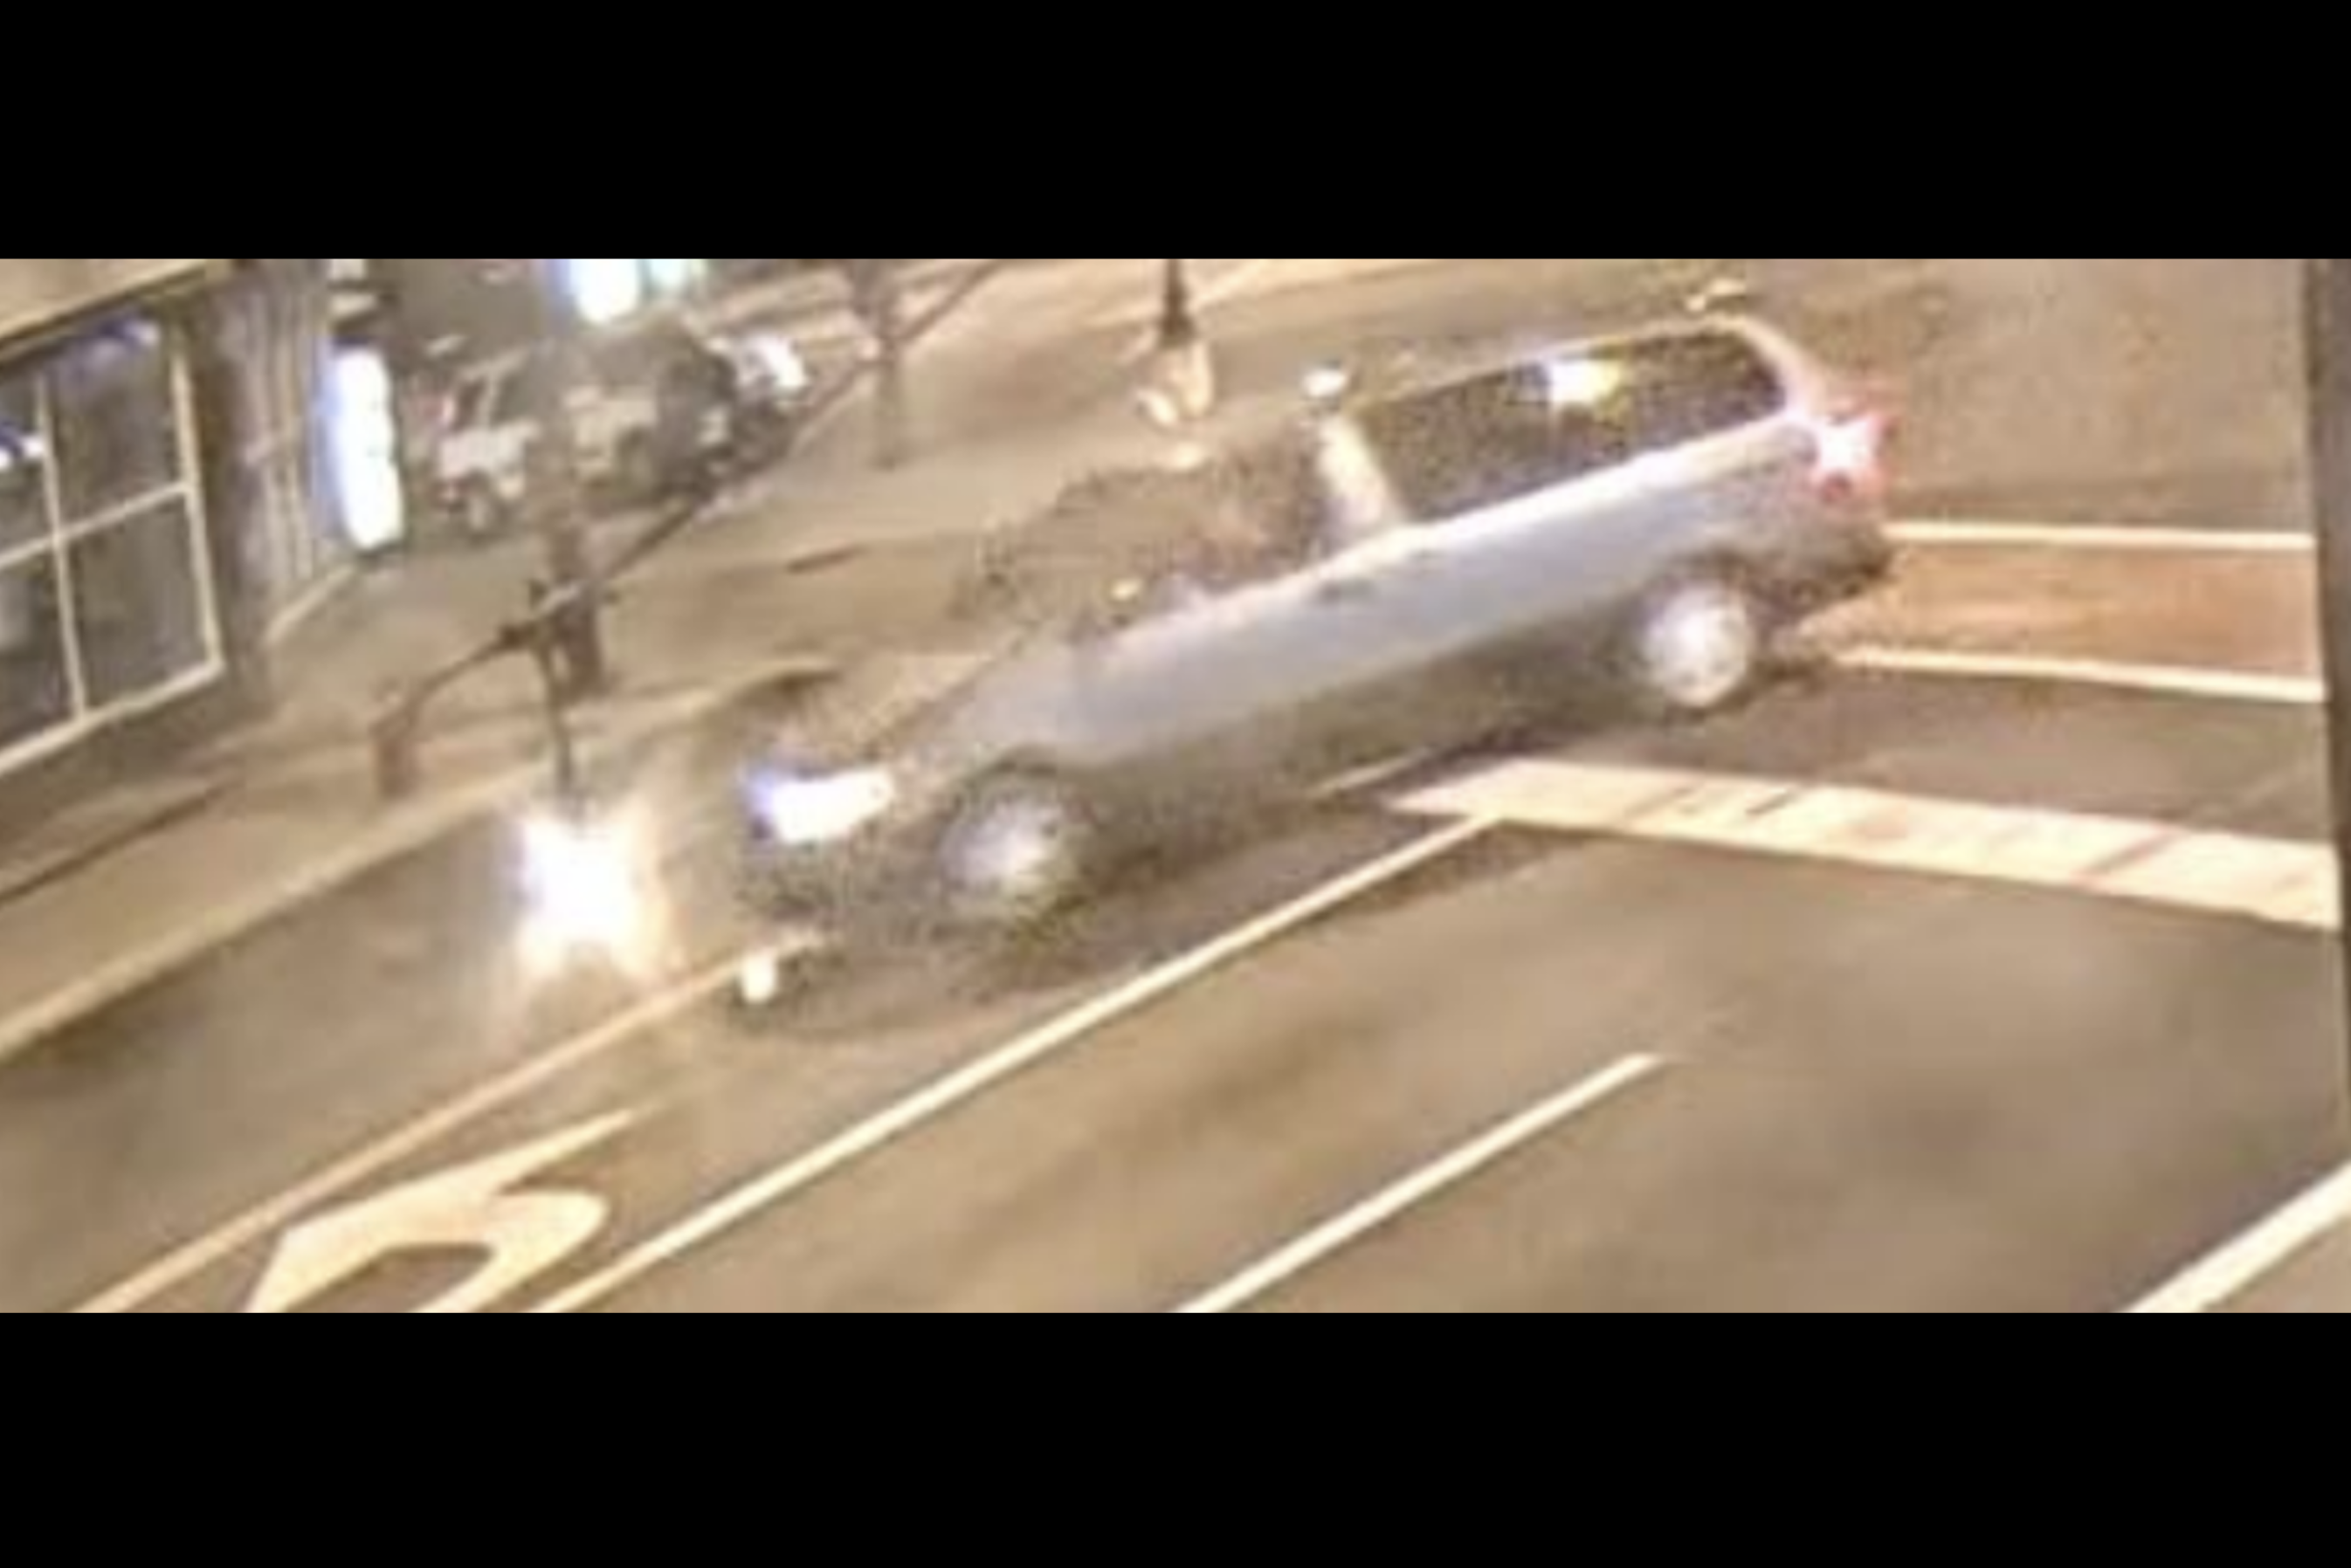 Chicago police are asking for help locating the driver of a vehicle wanted in connection with a July 24 shooting in the 4000 block of North Cicero Avenue.